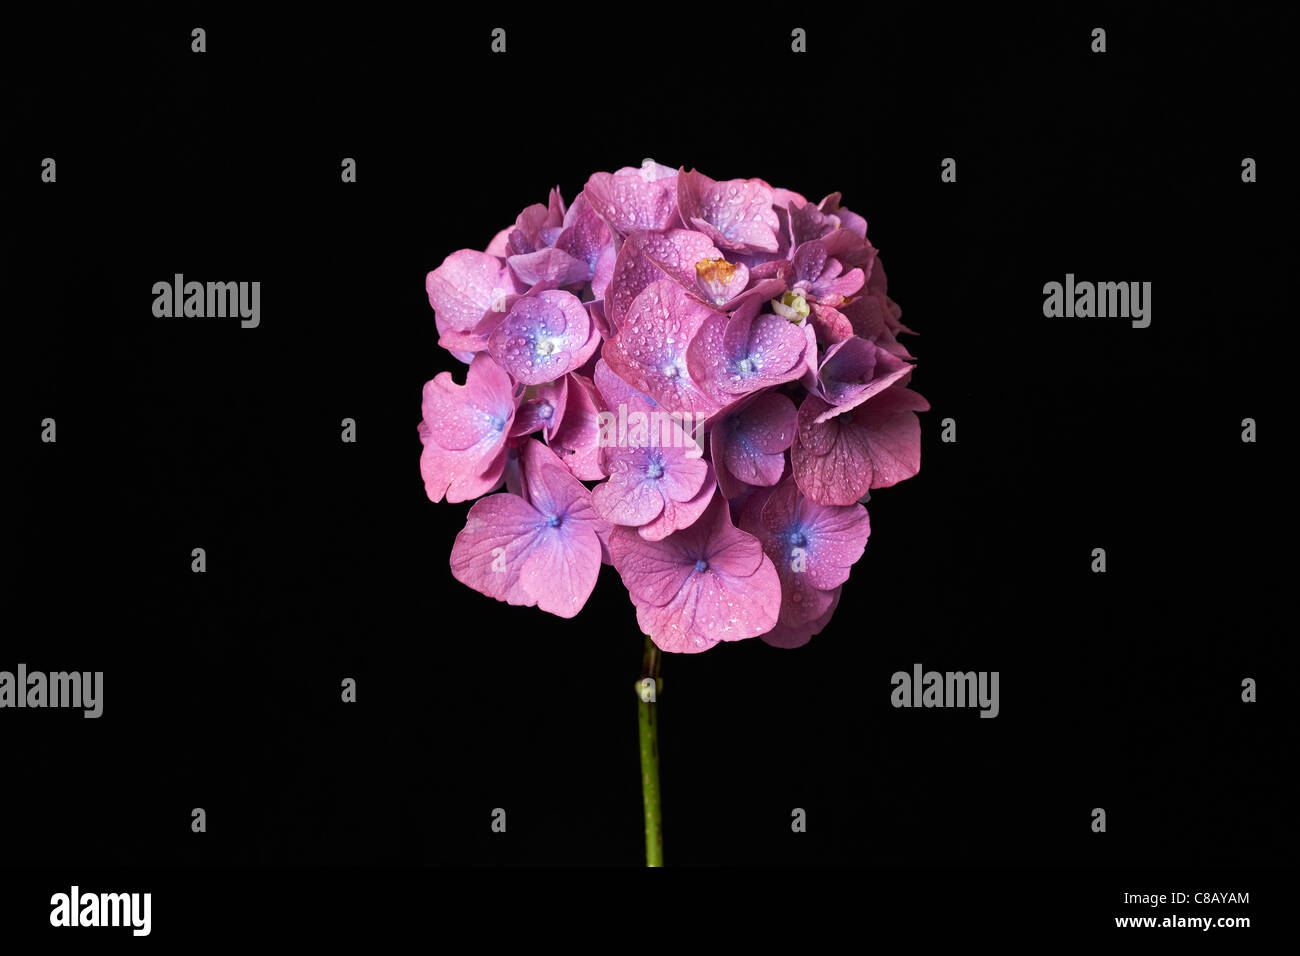 Hydrangea Flower  (Hydrangea macrophylla) with black background - Stock Image